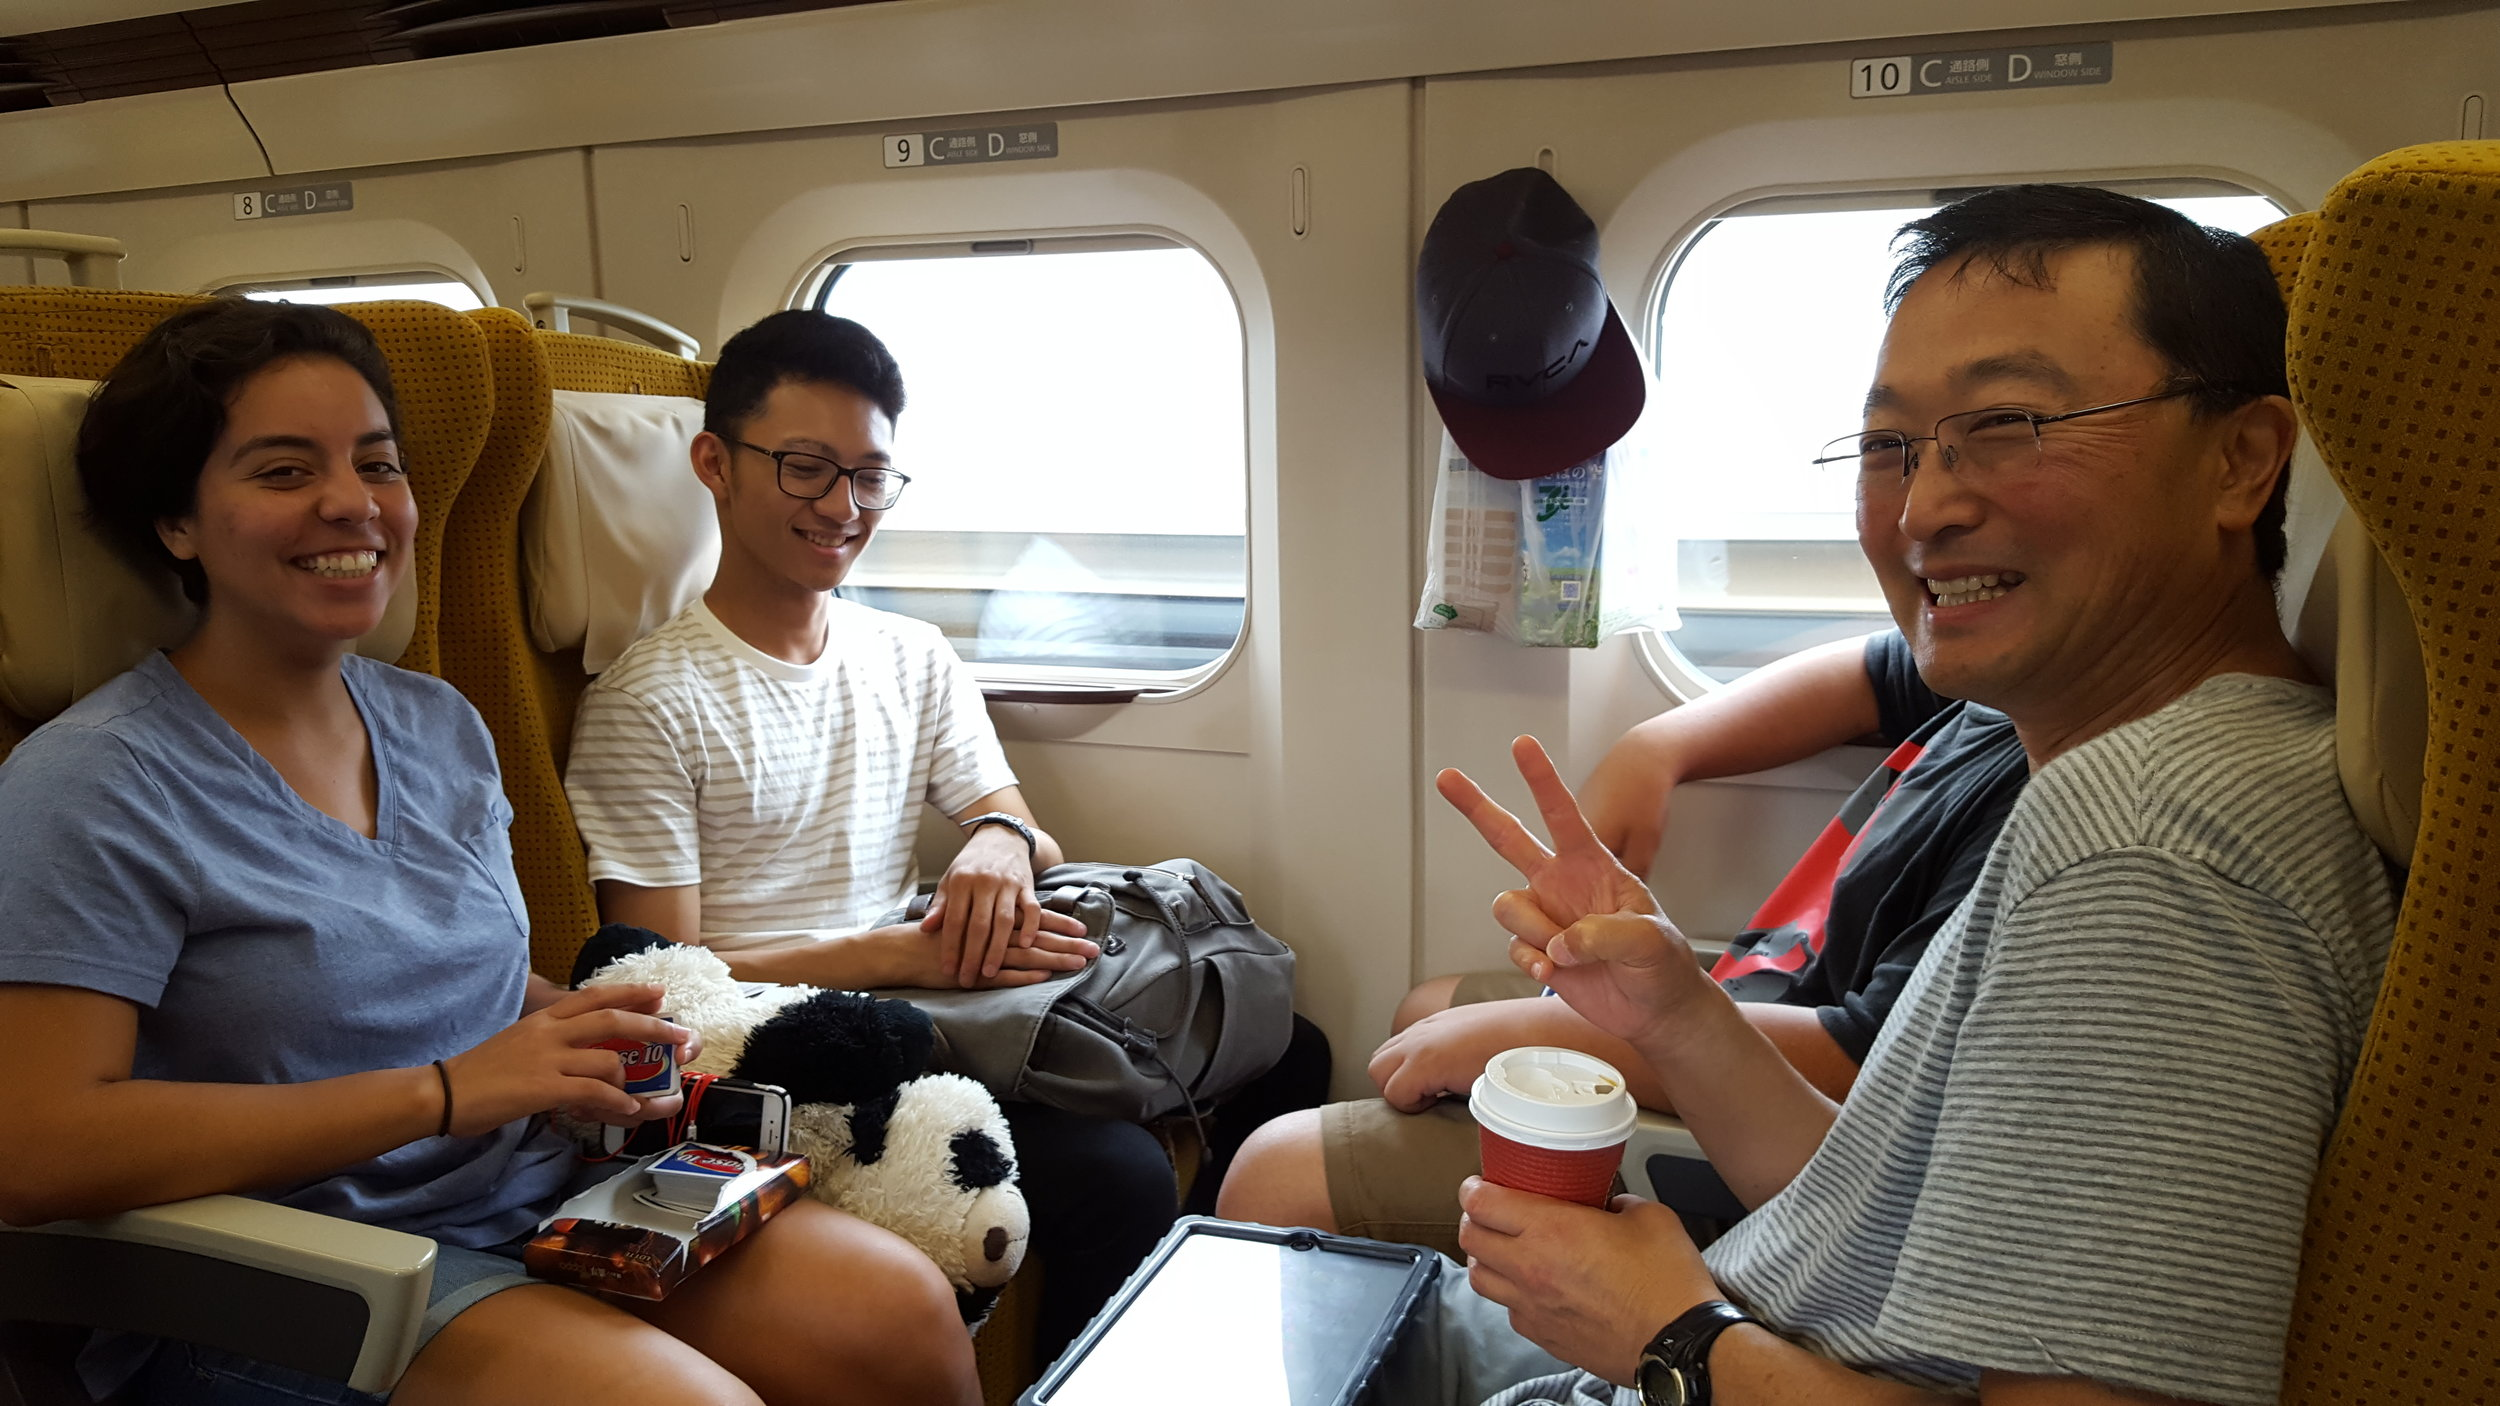 Natalie Tanaka's photo of team on Shinkansen